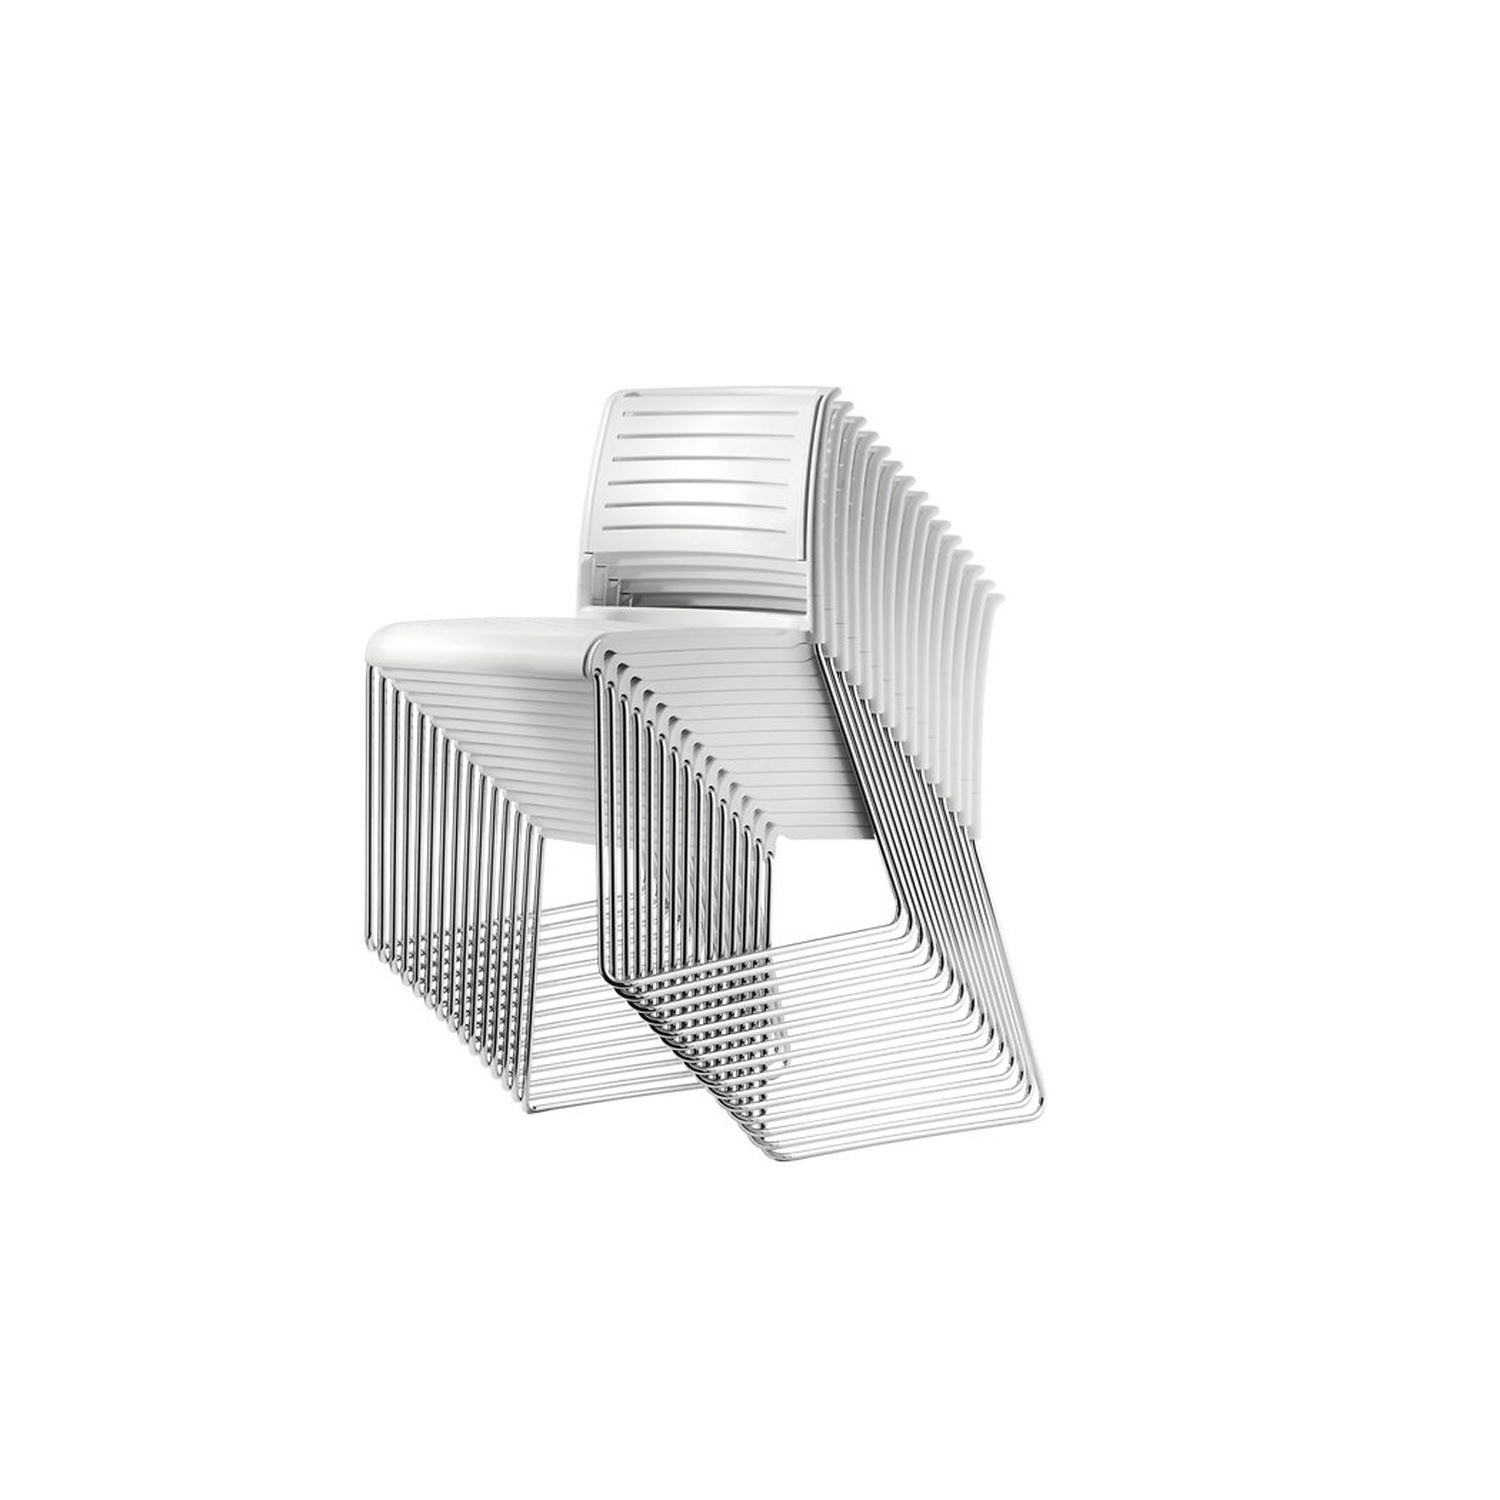 Aline-S Stacking Chairs